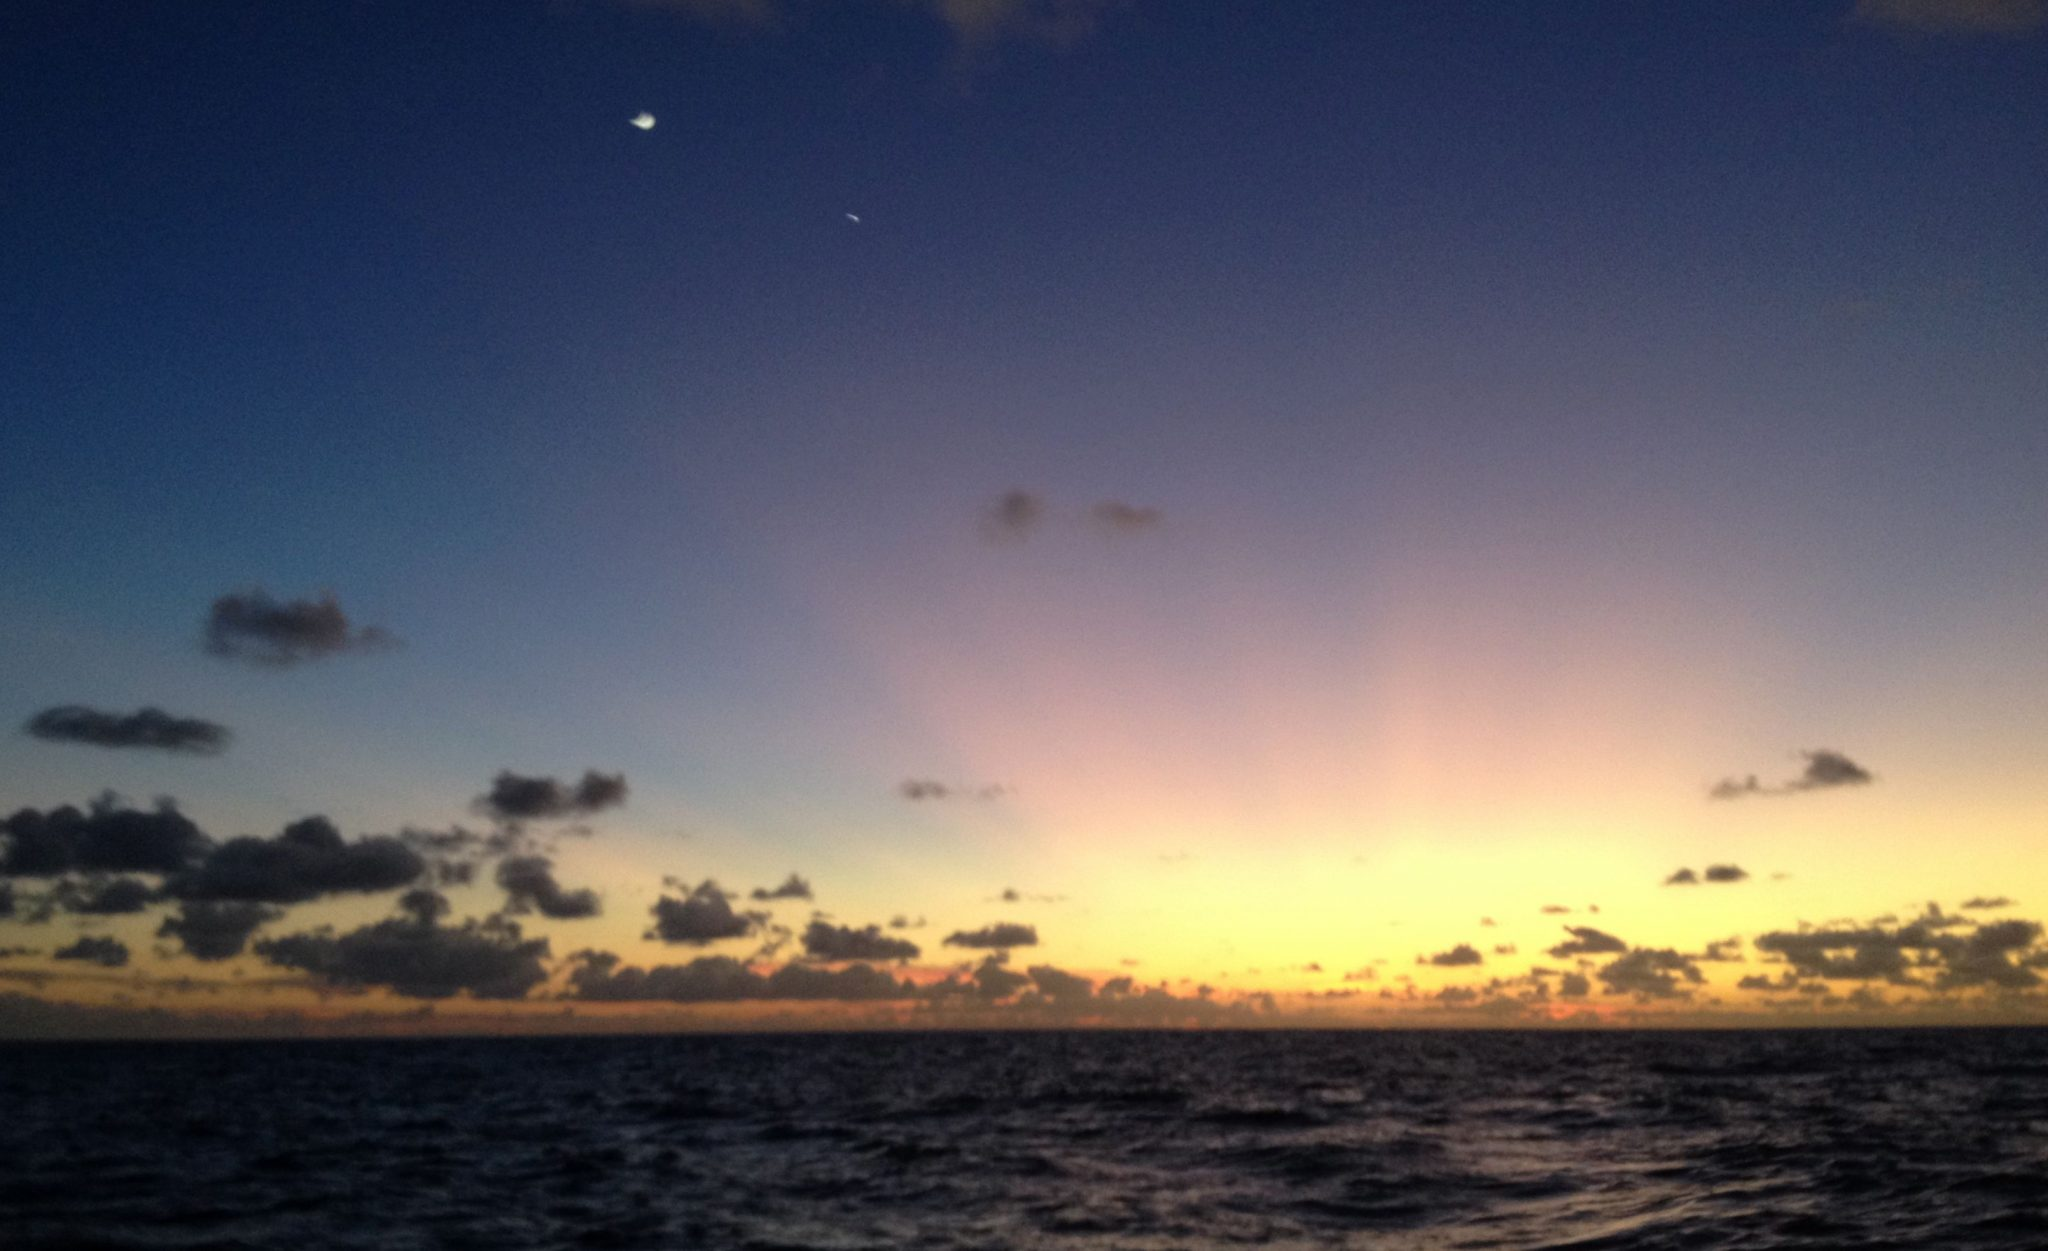 3-another-gift-from-the-lord-on-our-passage-from-vanuatu-to-mackay-australia-you-can-see-the-moon-and-venus-with-the-loom-of-the-sun